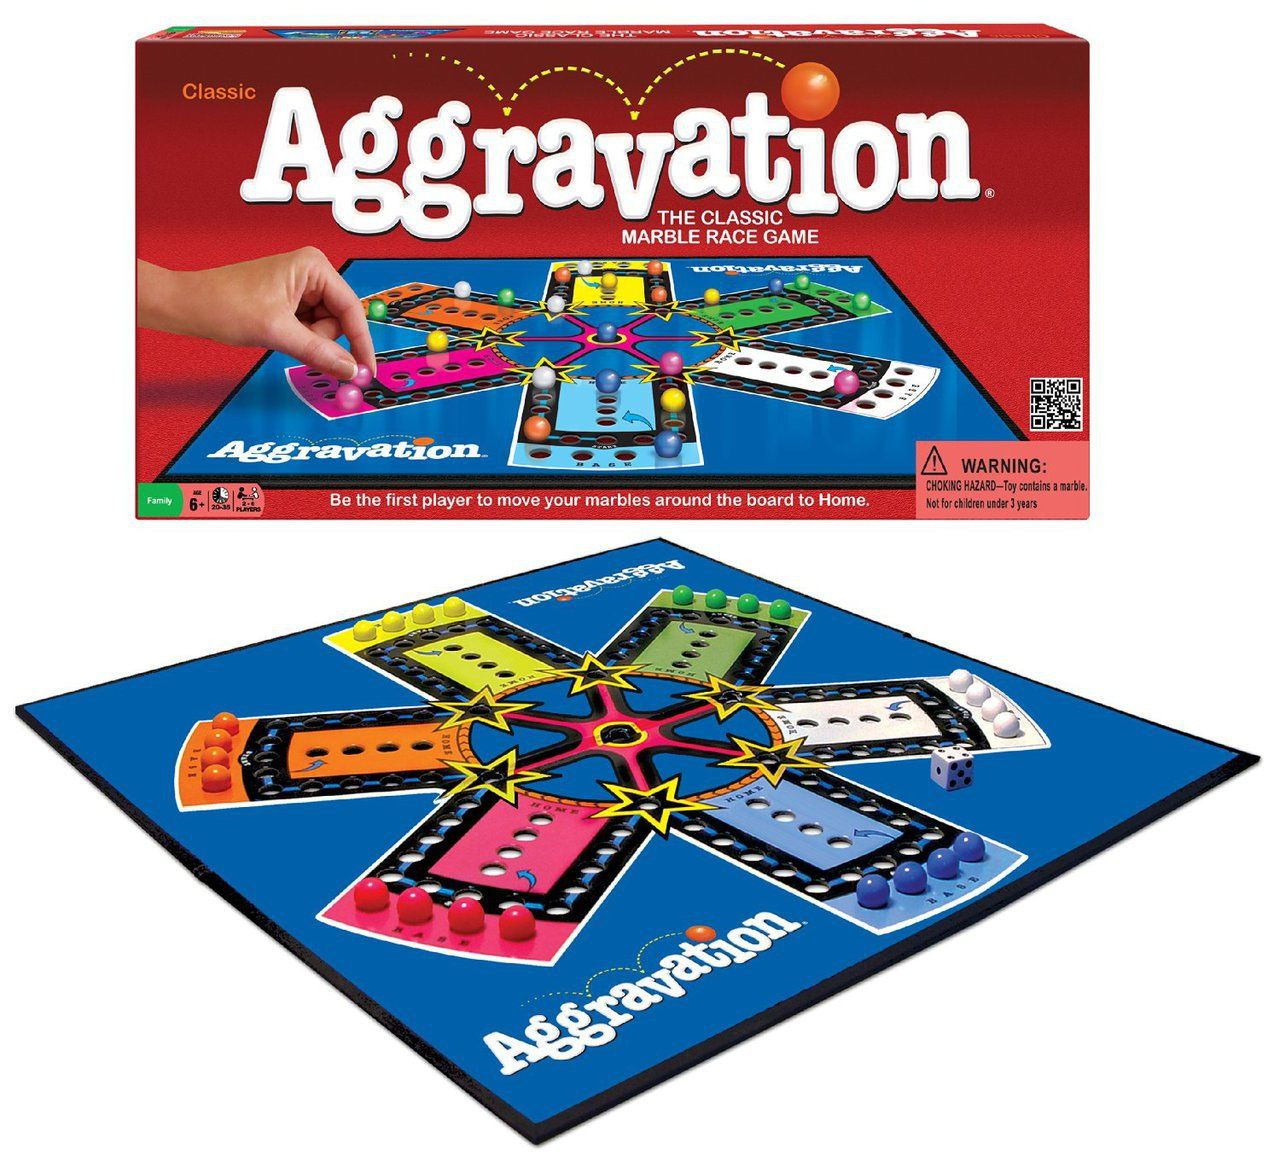 Aggravation - Miller Pads and Paper